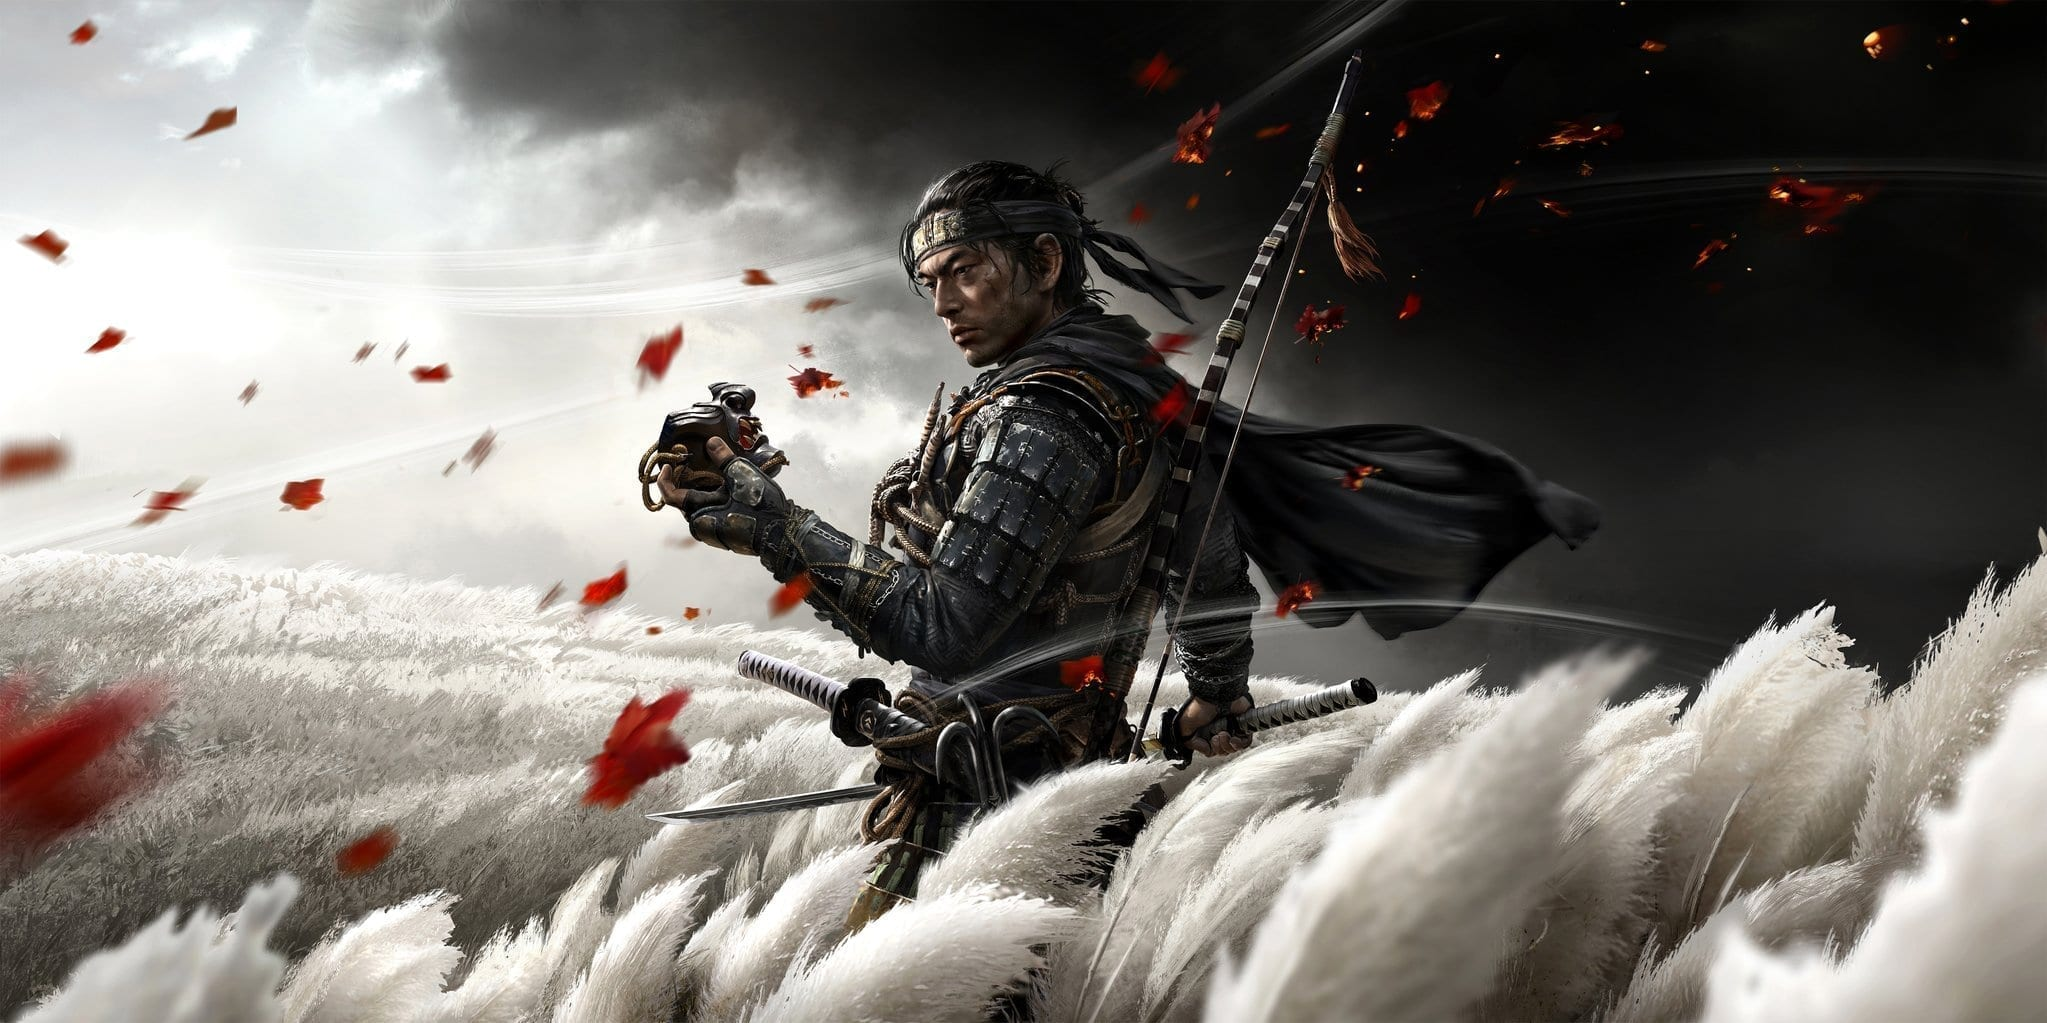 State Of Play To Debut Gameplay of Ghost of Tsushima.